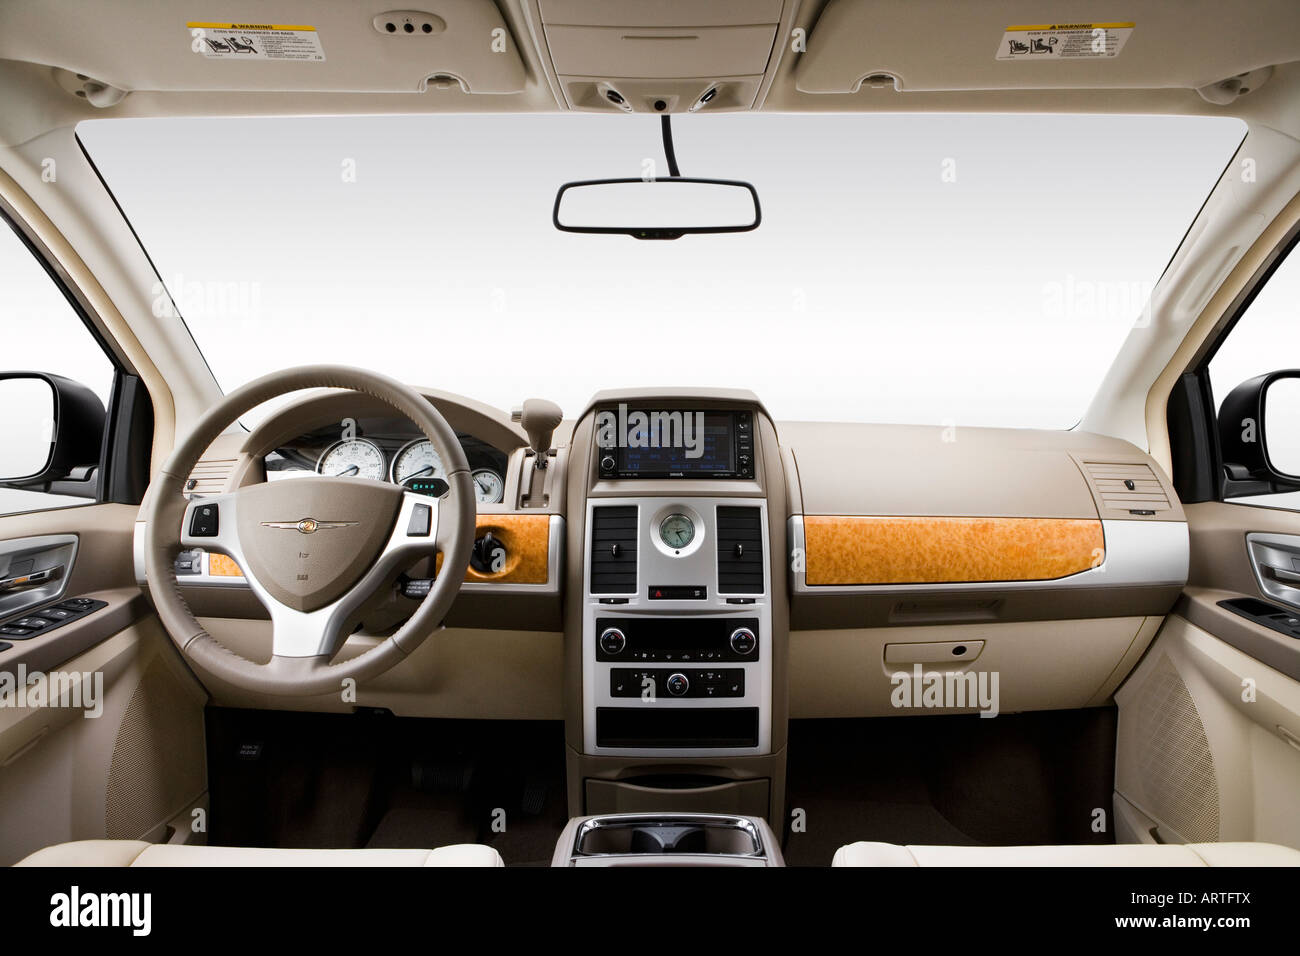 2008 chrysler town country limited in beige dashboard center stock photo 16124377 alamy. Black Bedroom Furniture Sets. Home Design Ideas